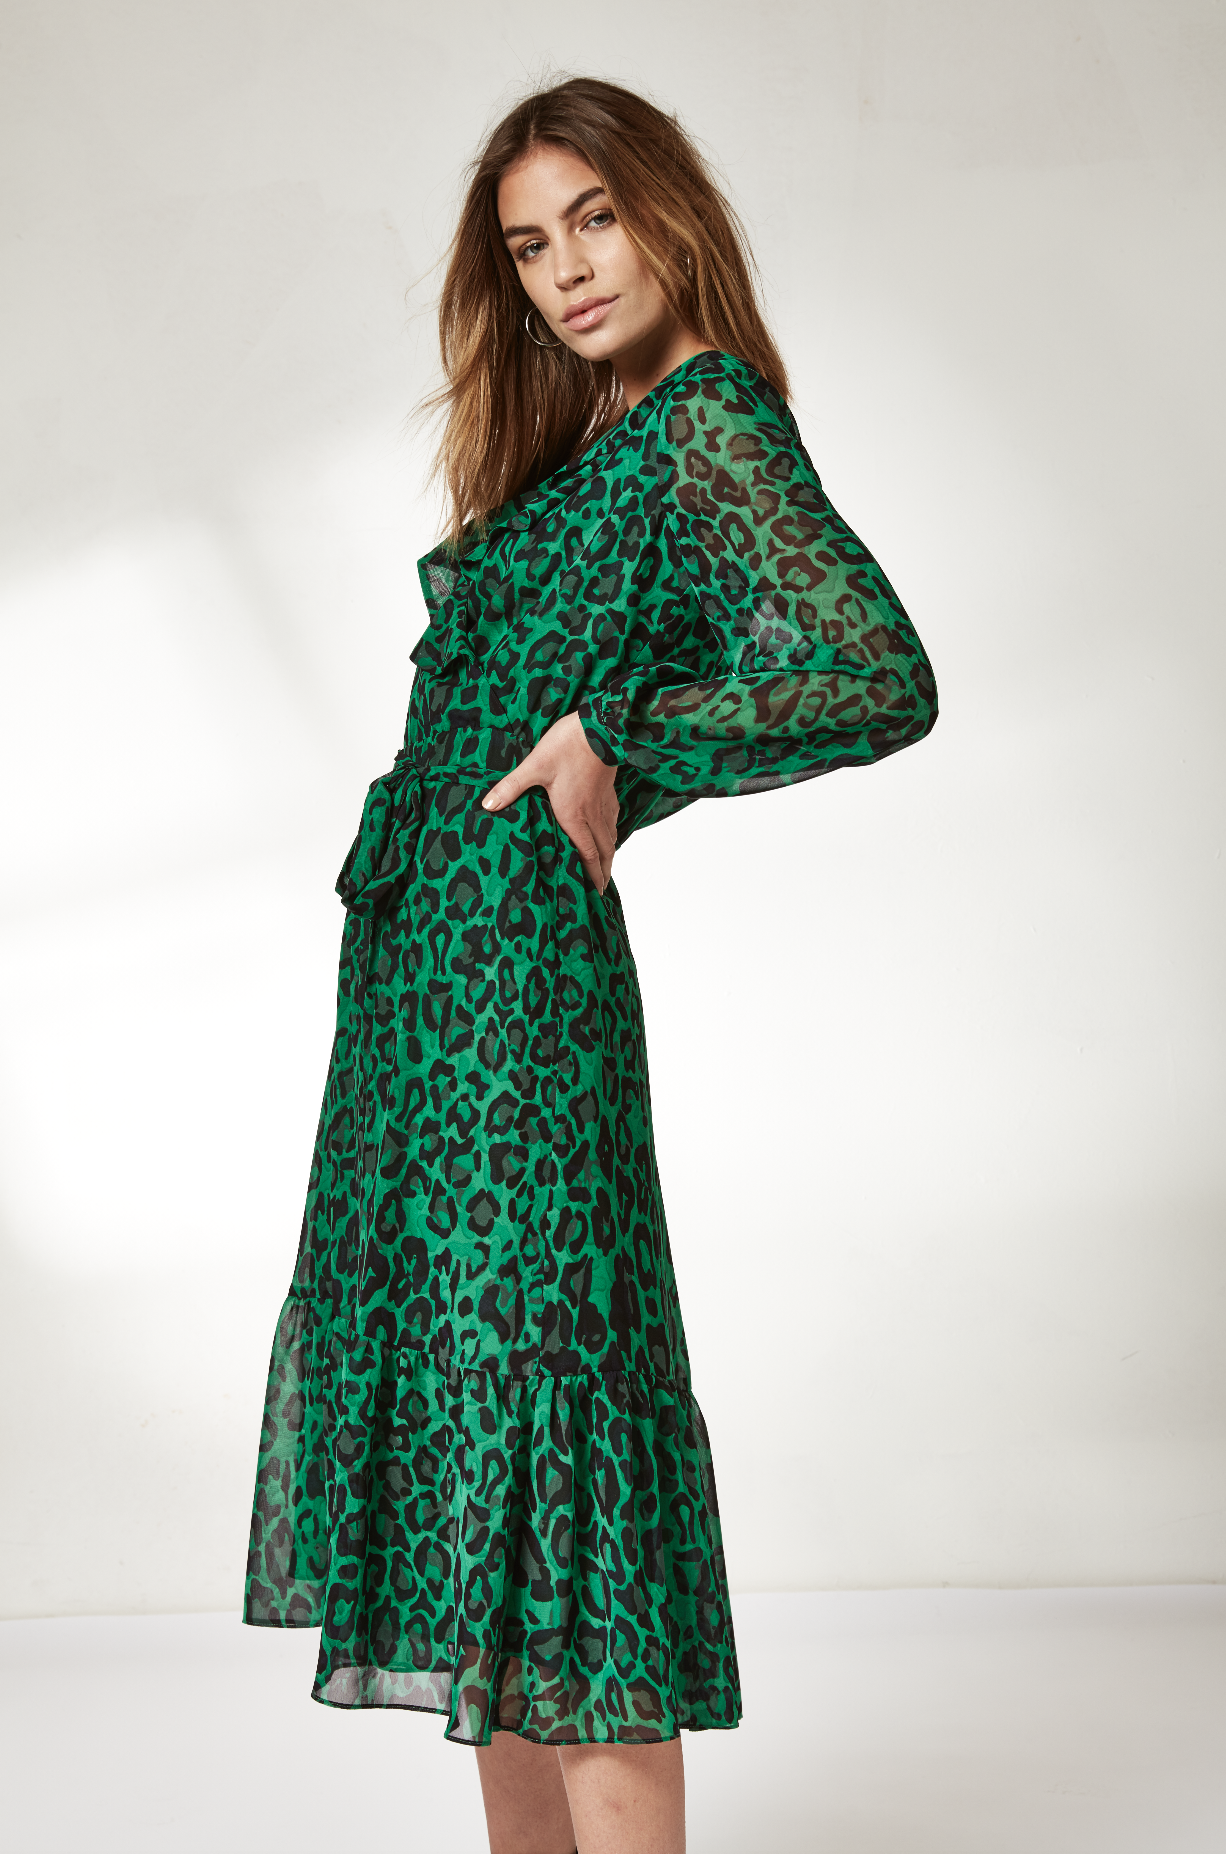 84b77048f10 Green Animal Print Midi Fit and Flare Dress in 2019